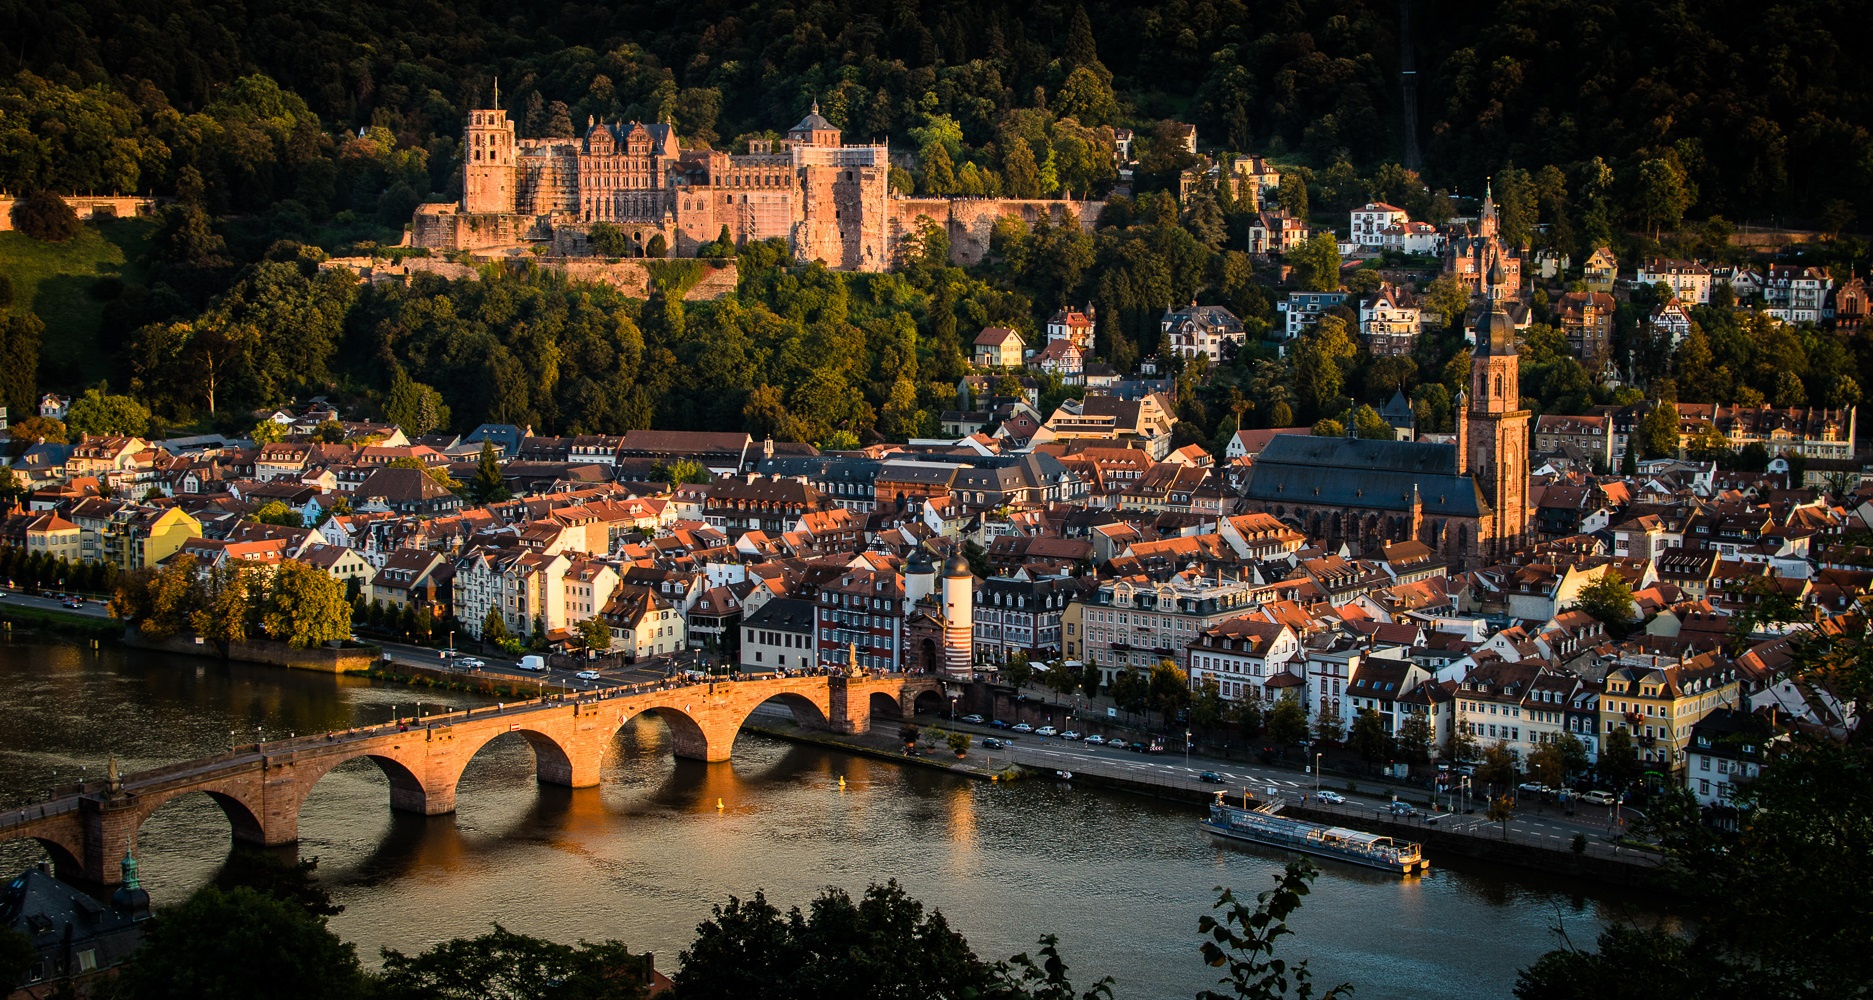 Sunset in Heidelberg - © Anna Vasilchenko